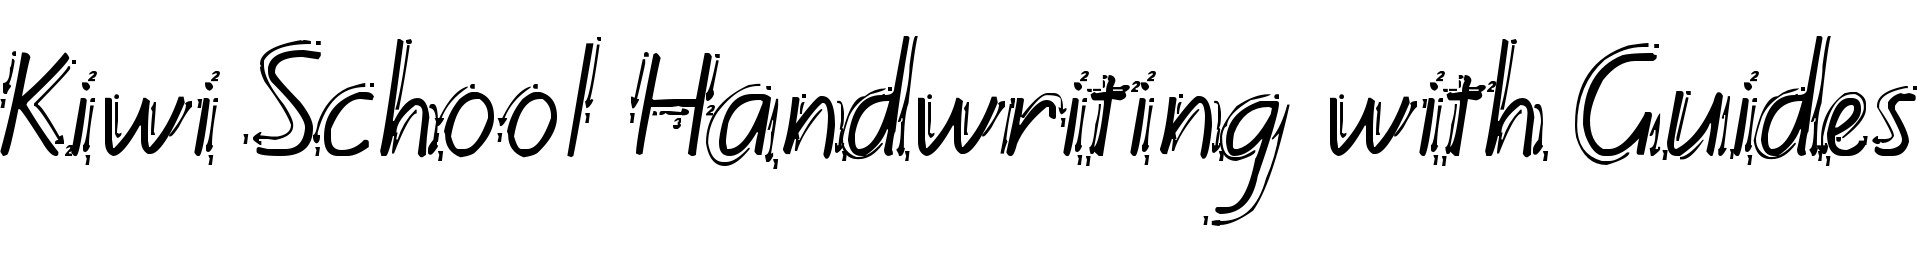 Kiwi School Handwriting with Guides